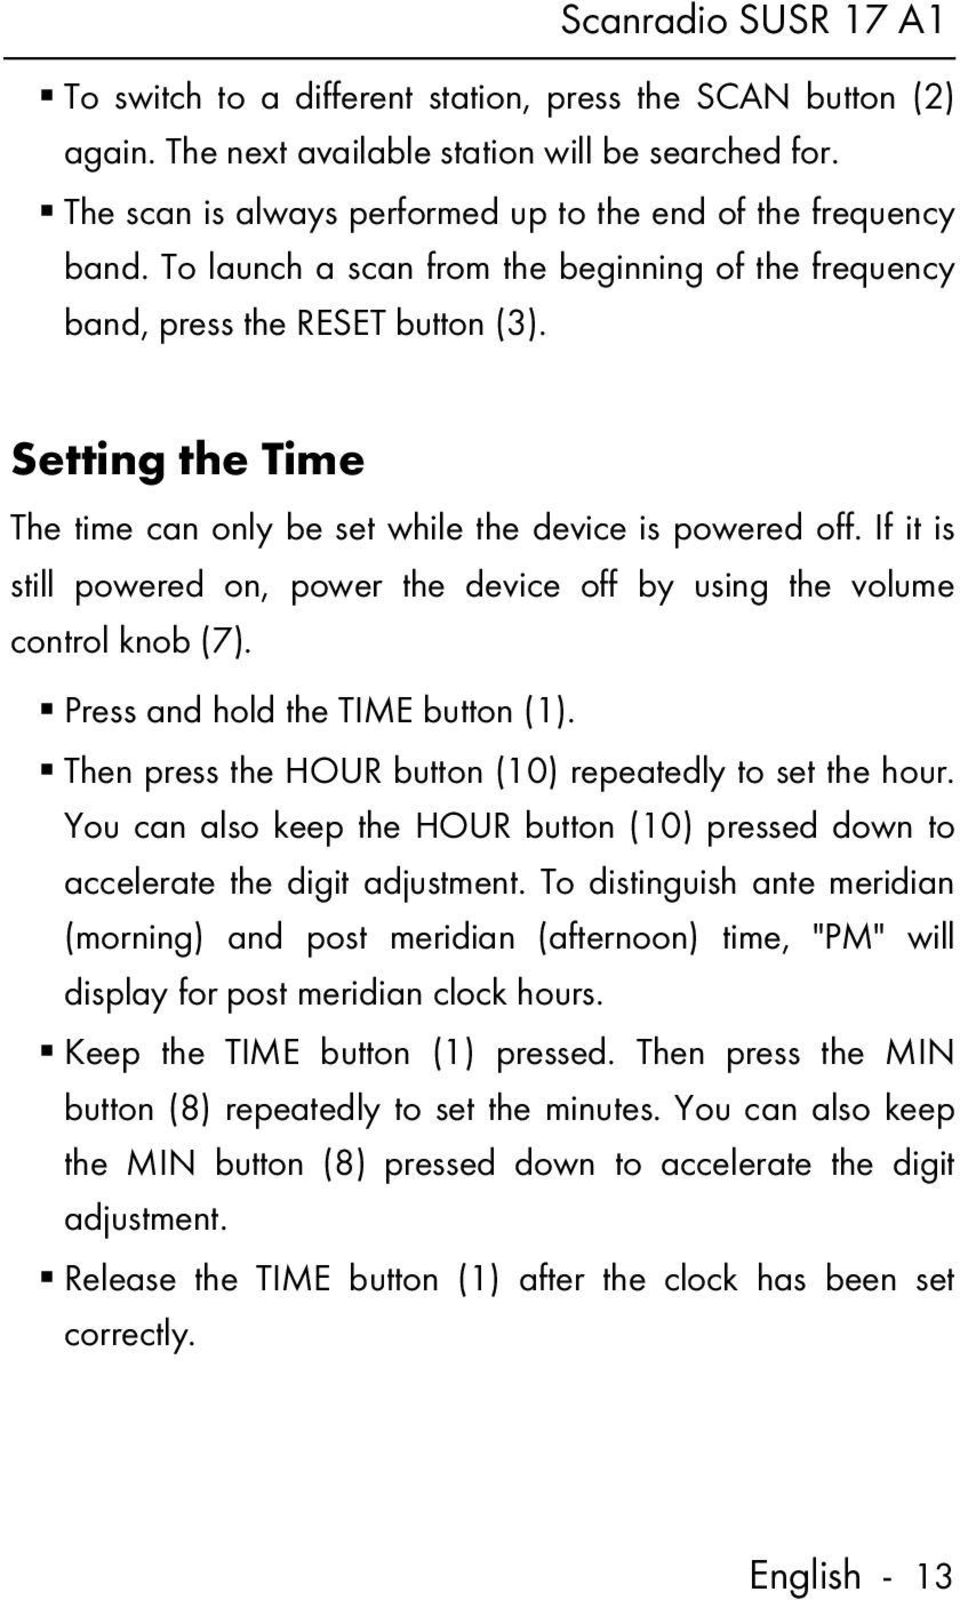 If it is still powered on, power the device off by using the volume control knob (7). Press and hold the TIME button (1). Then press the HOUR button (10) repeatedly to set the hour.